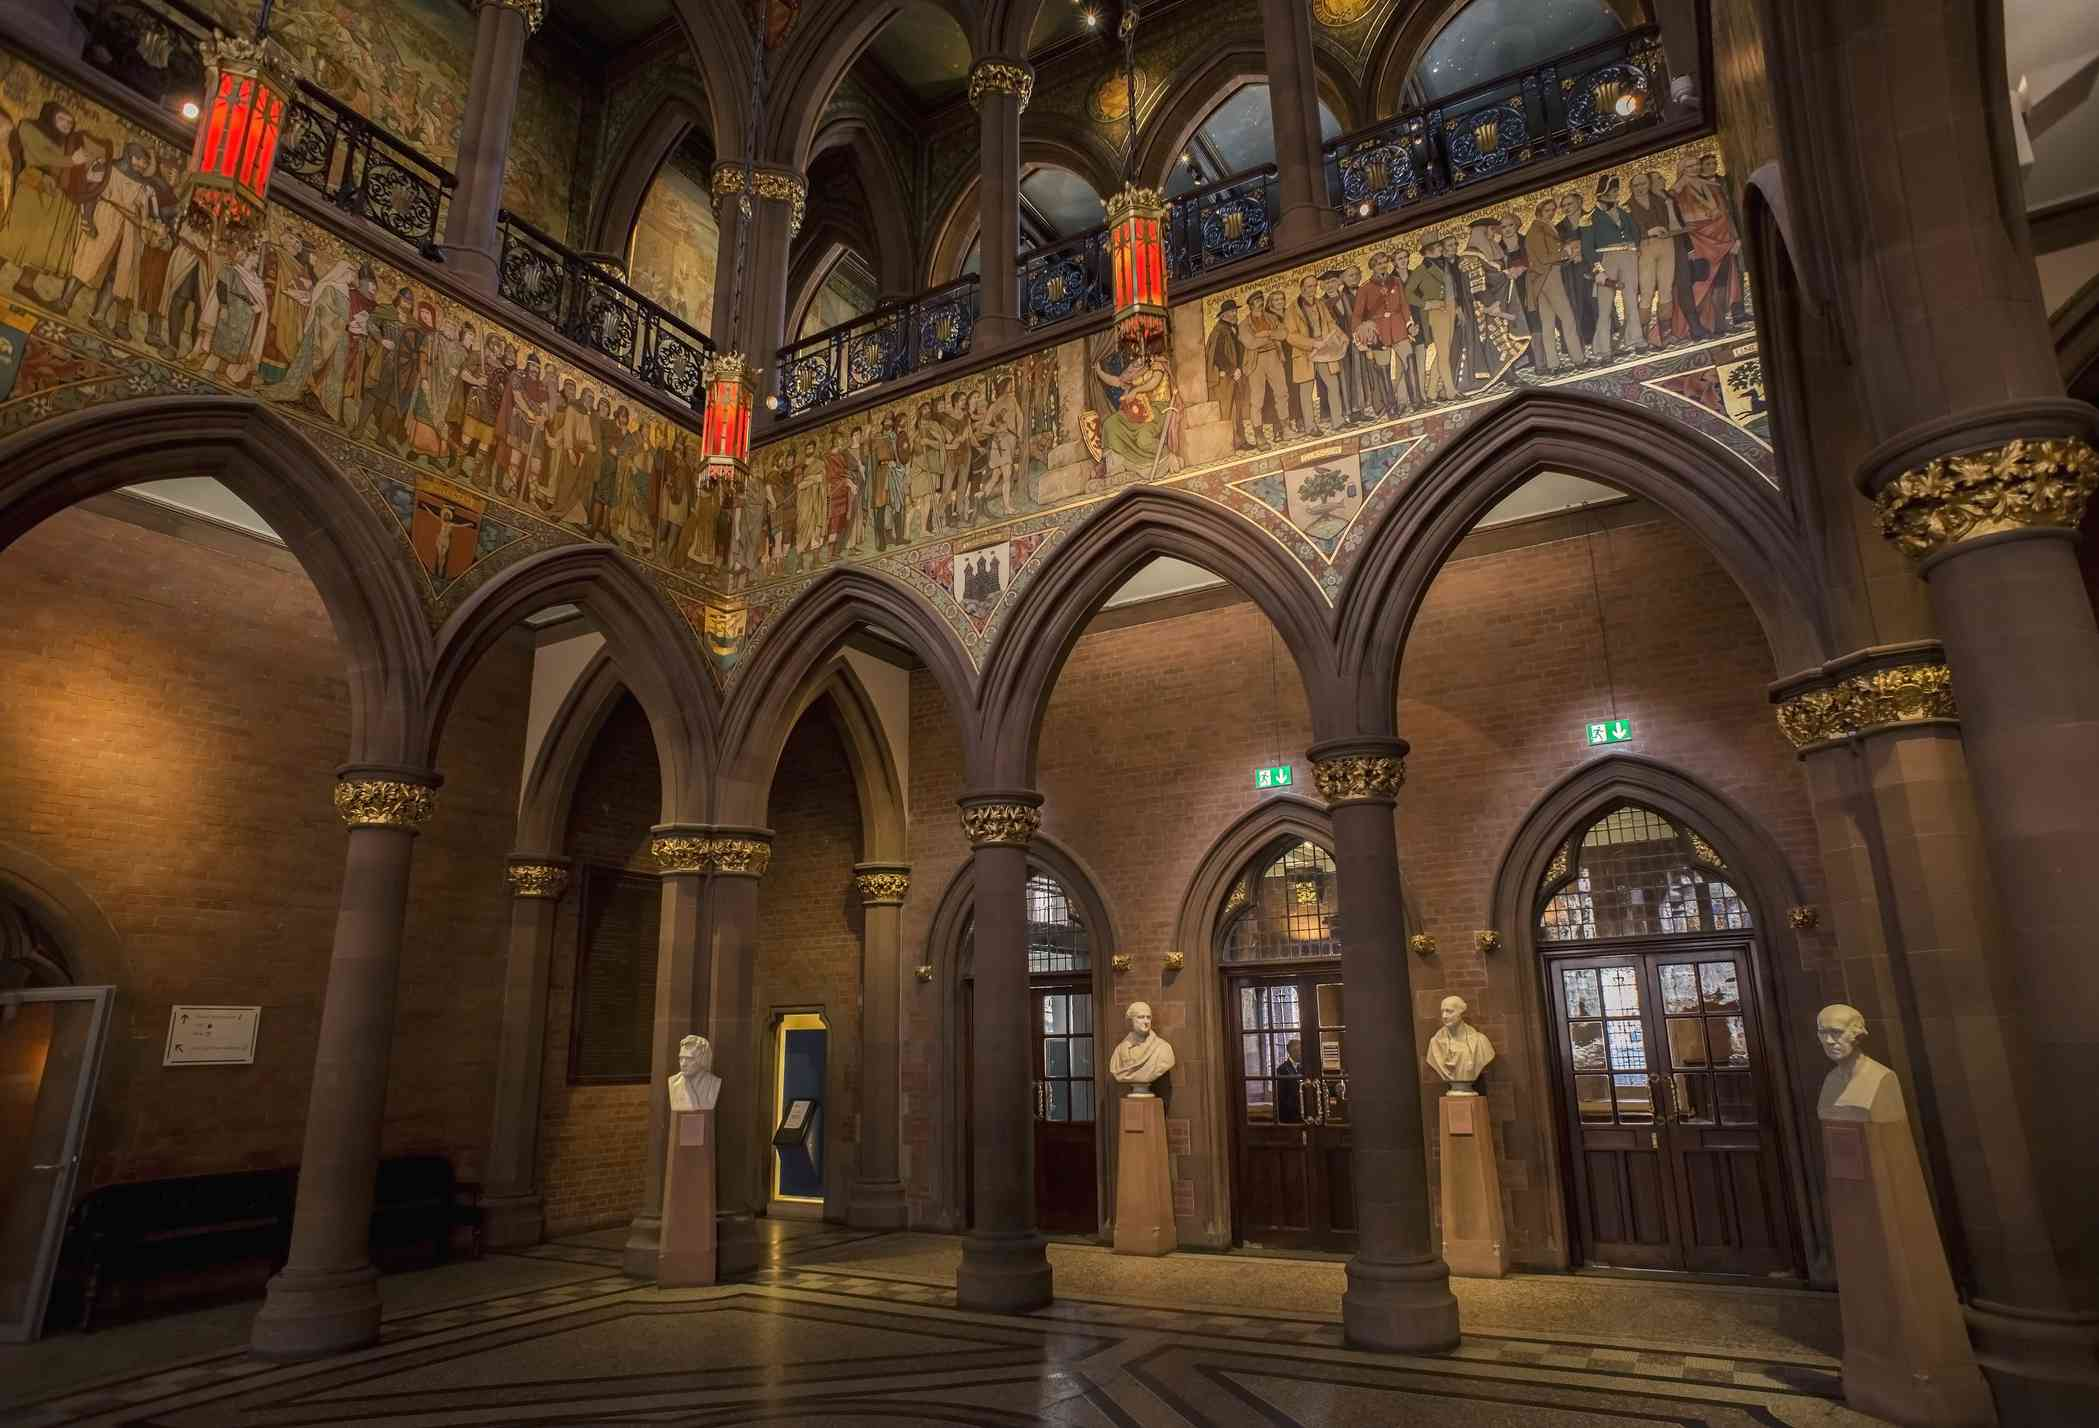 Arches and frieze in Scottish National Portrait Gallery